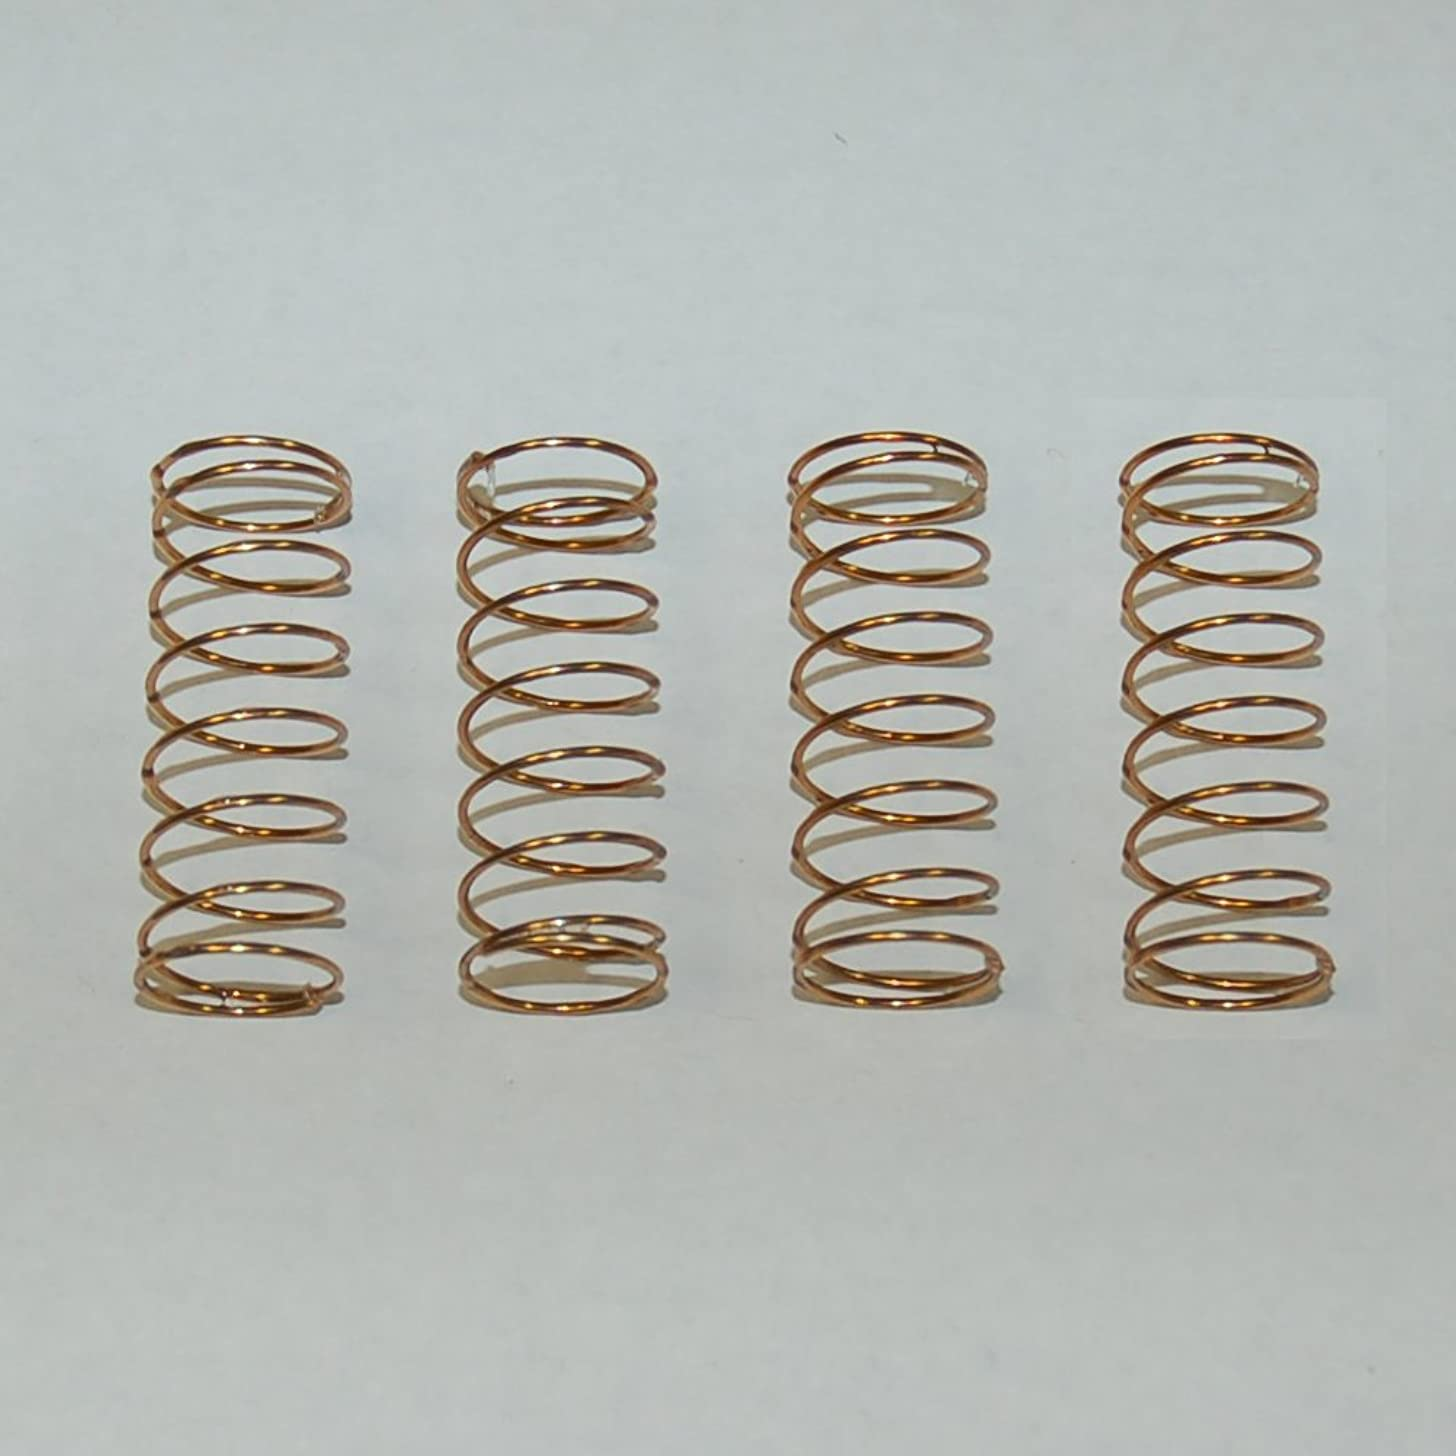 Yamaha Euphonium Valve Springs, Set of 4